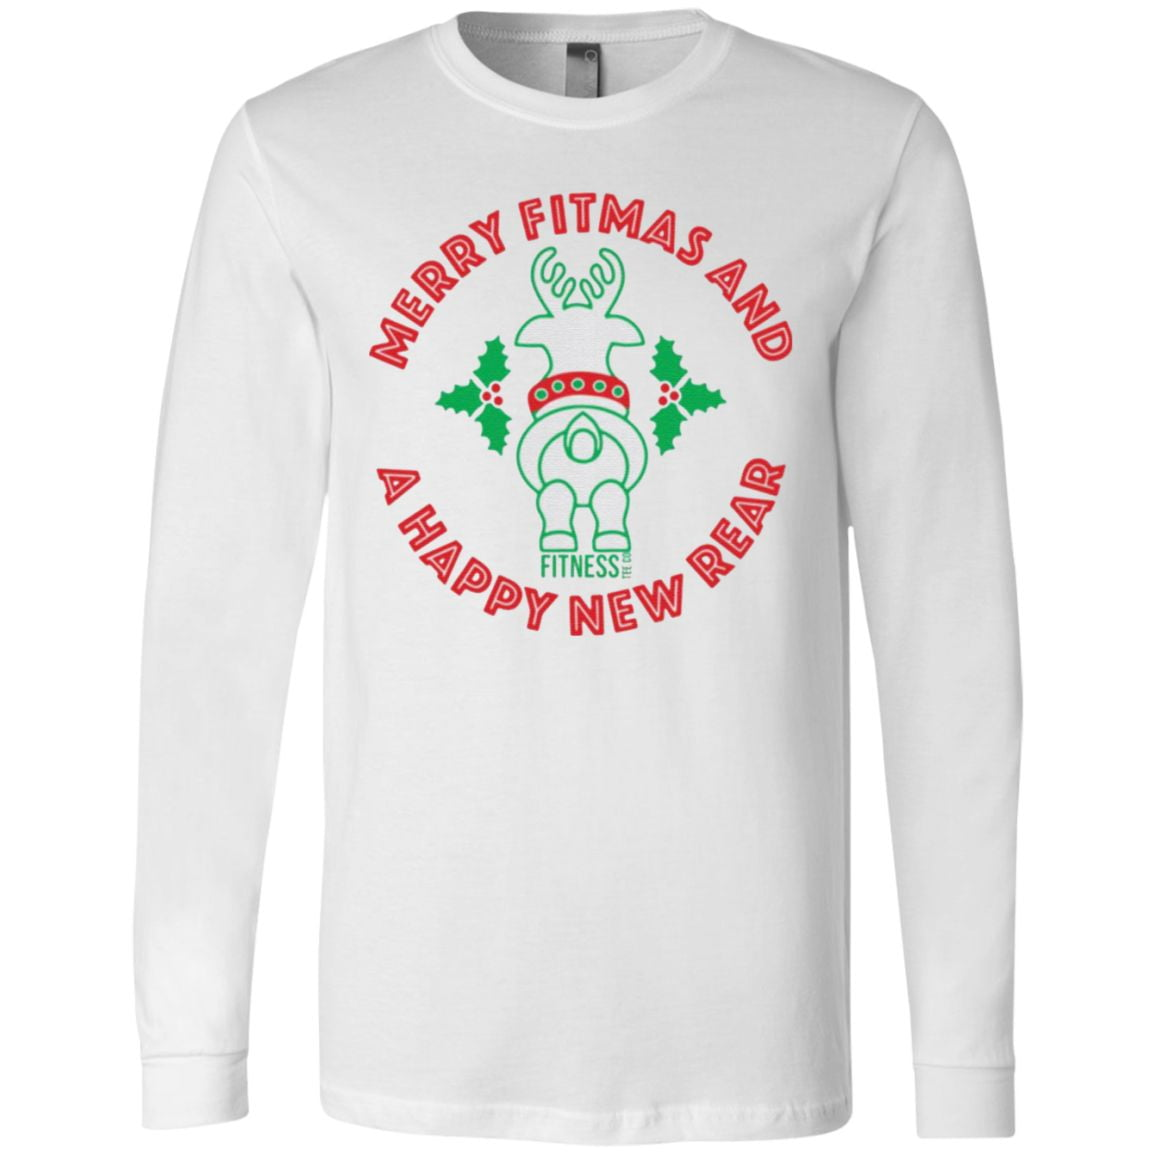 Merry Fitmas and A Happy New Rear t shirt